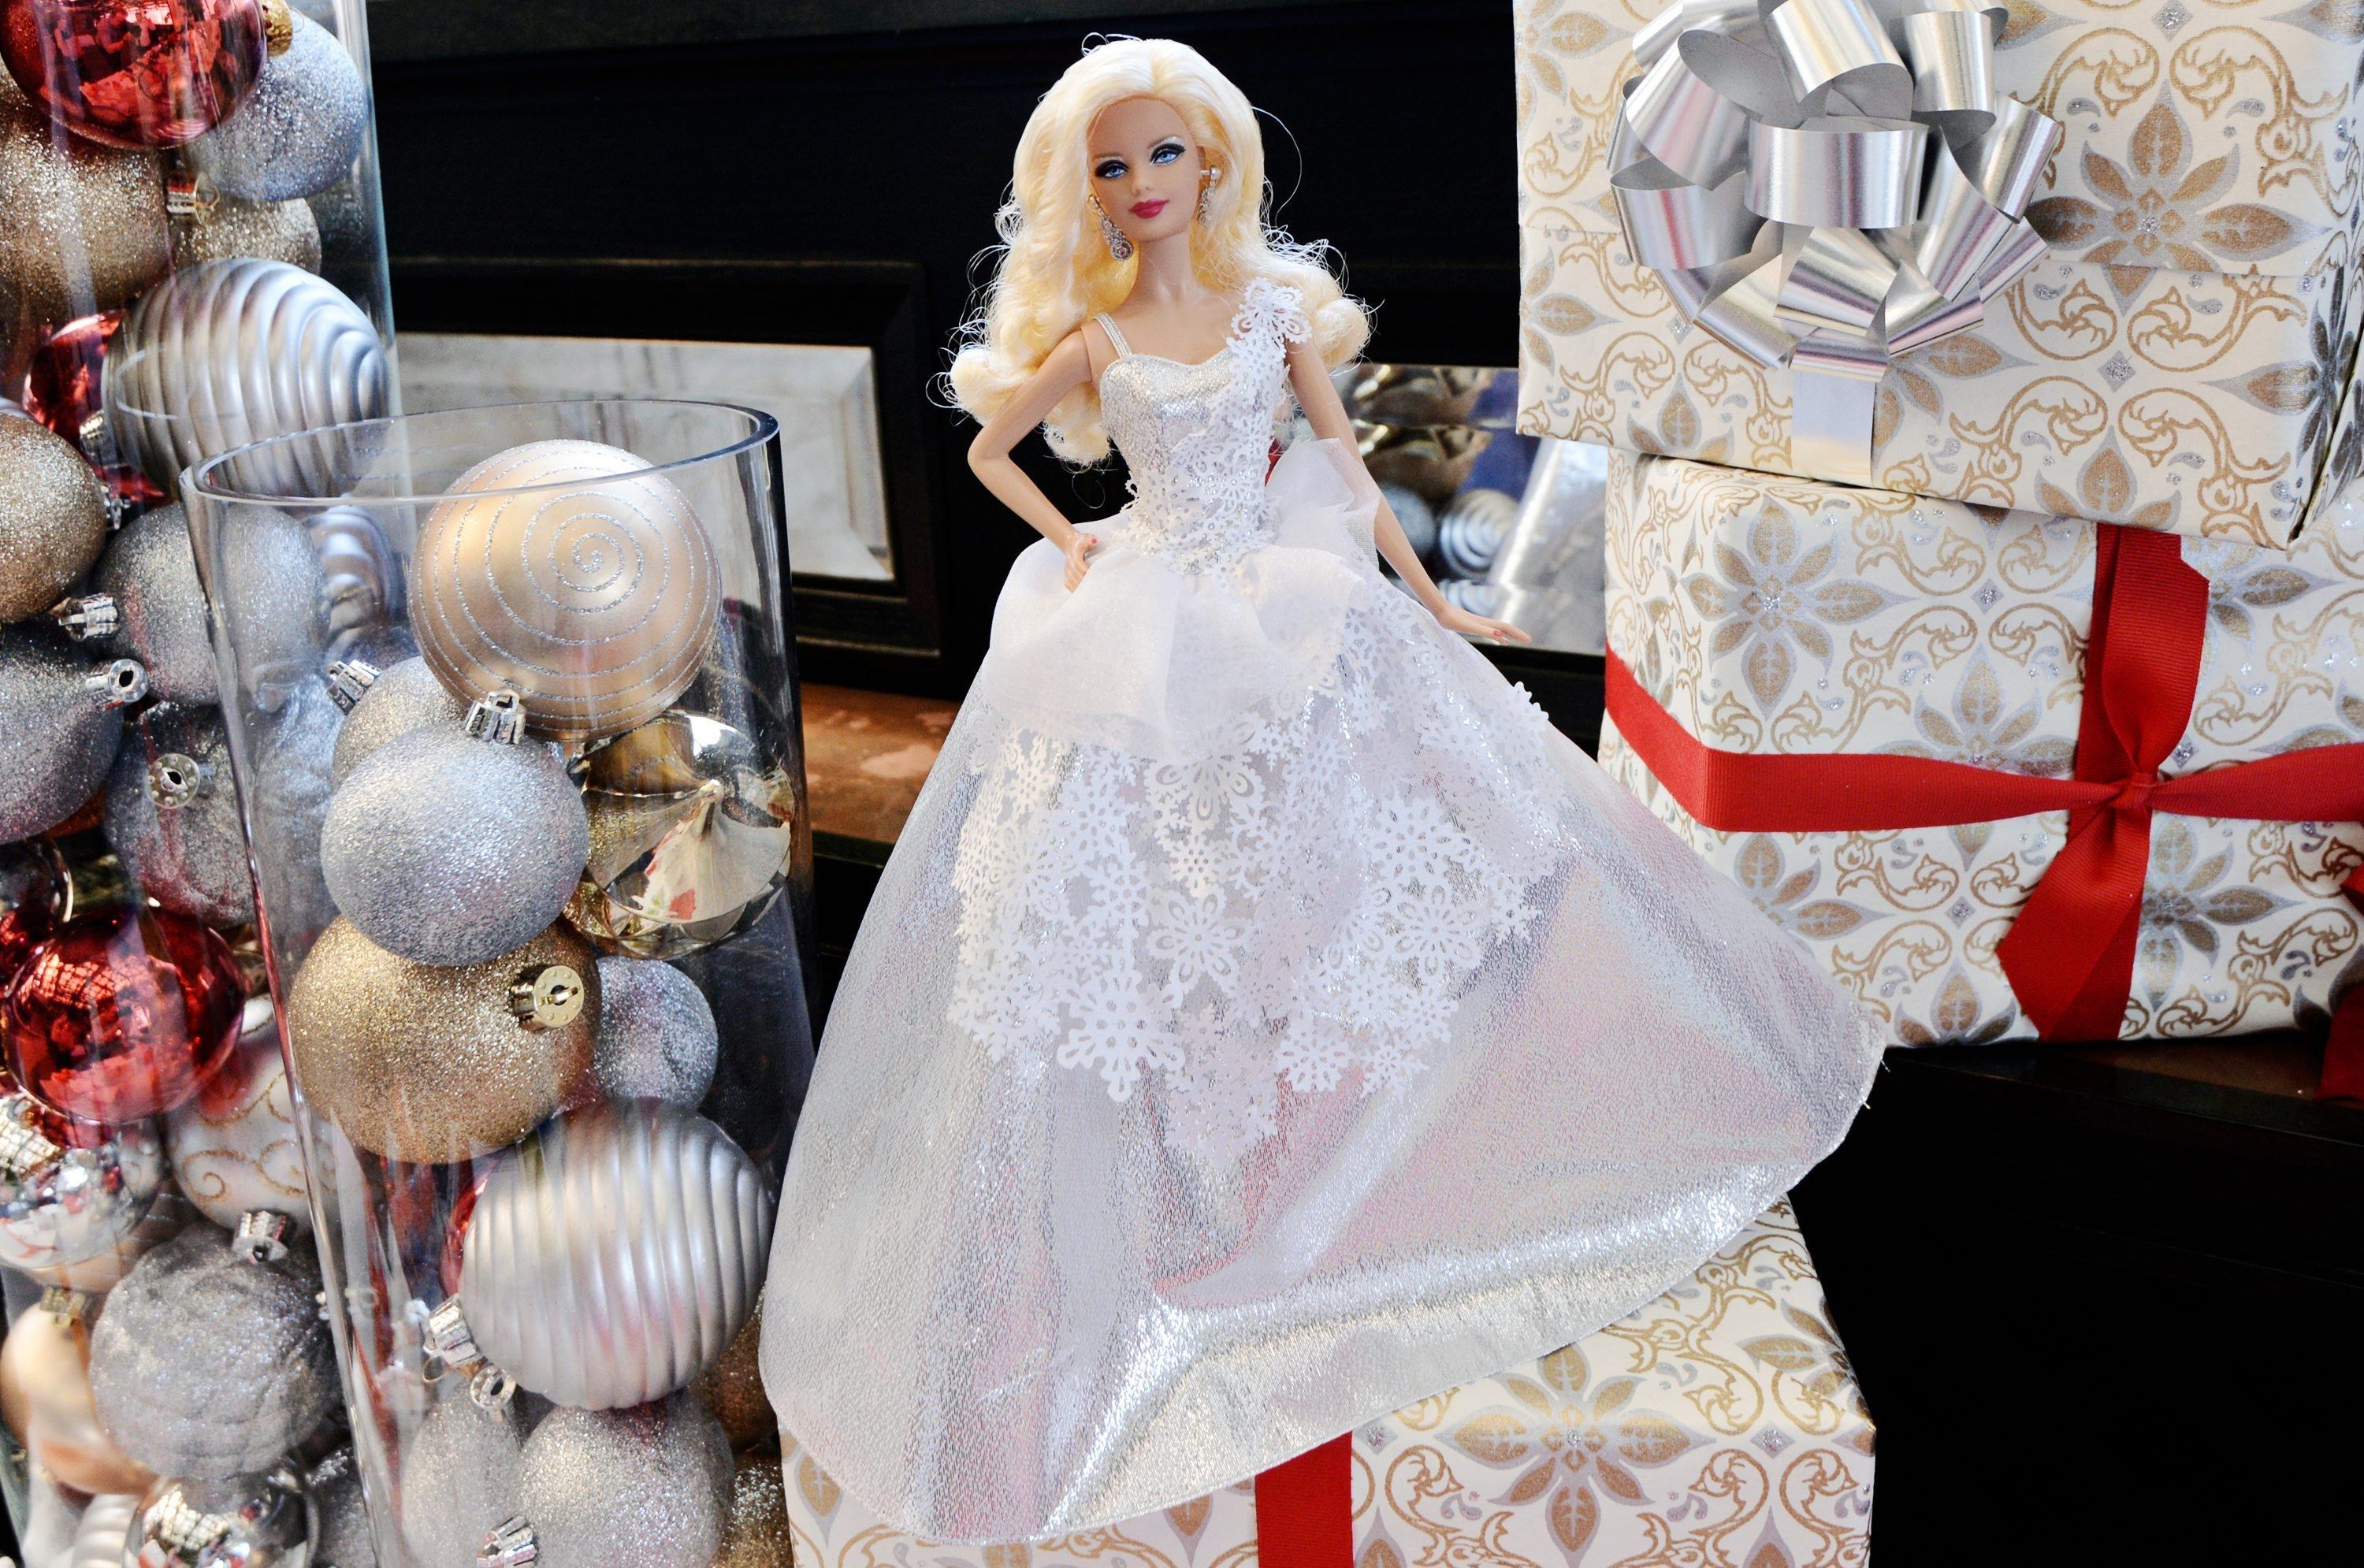 Mattel Inc.'s Holiday Barbie 2013 is expected to be a popular with toy shoppers this season.s